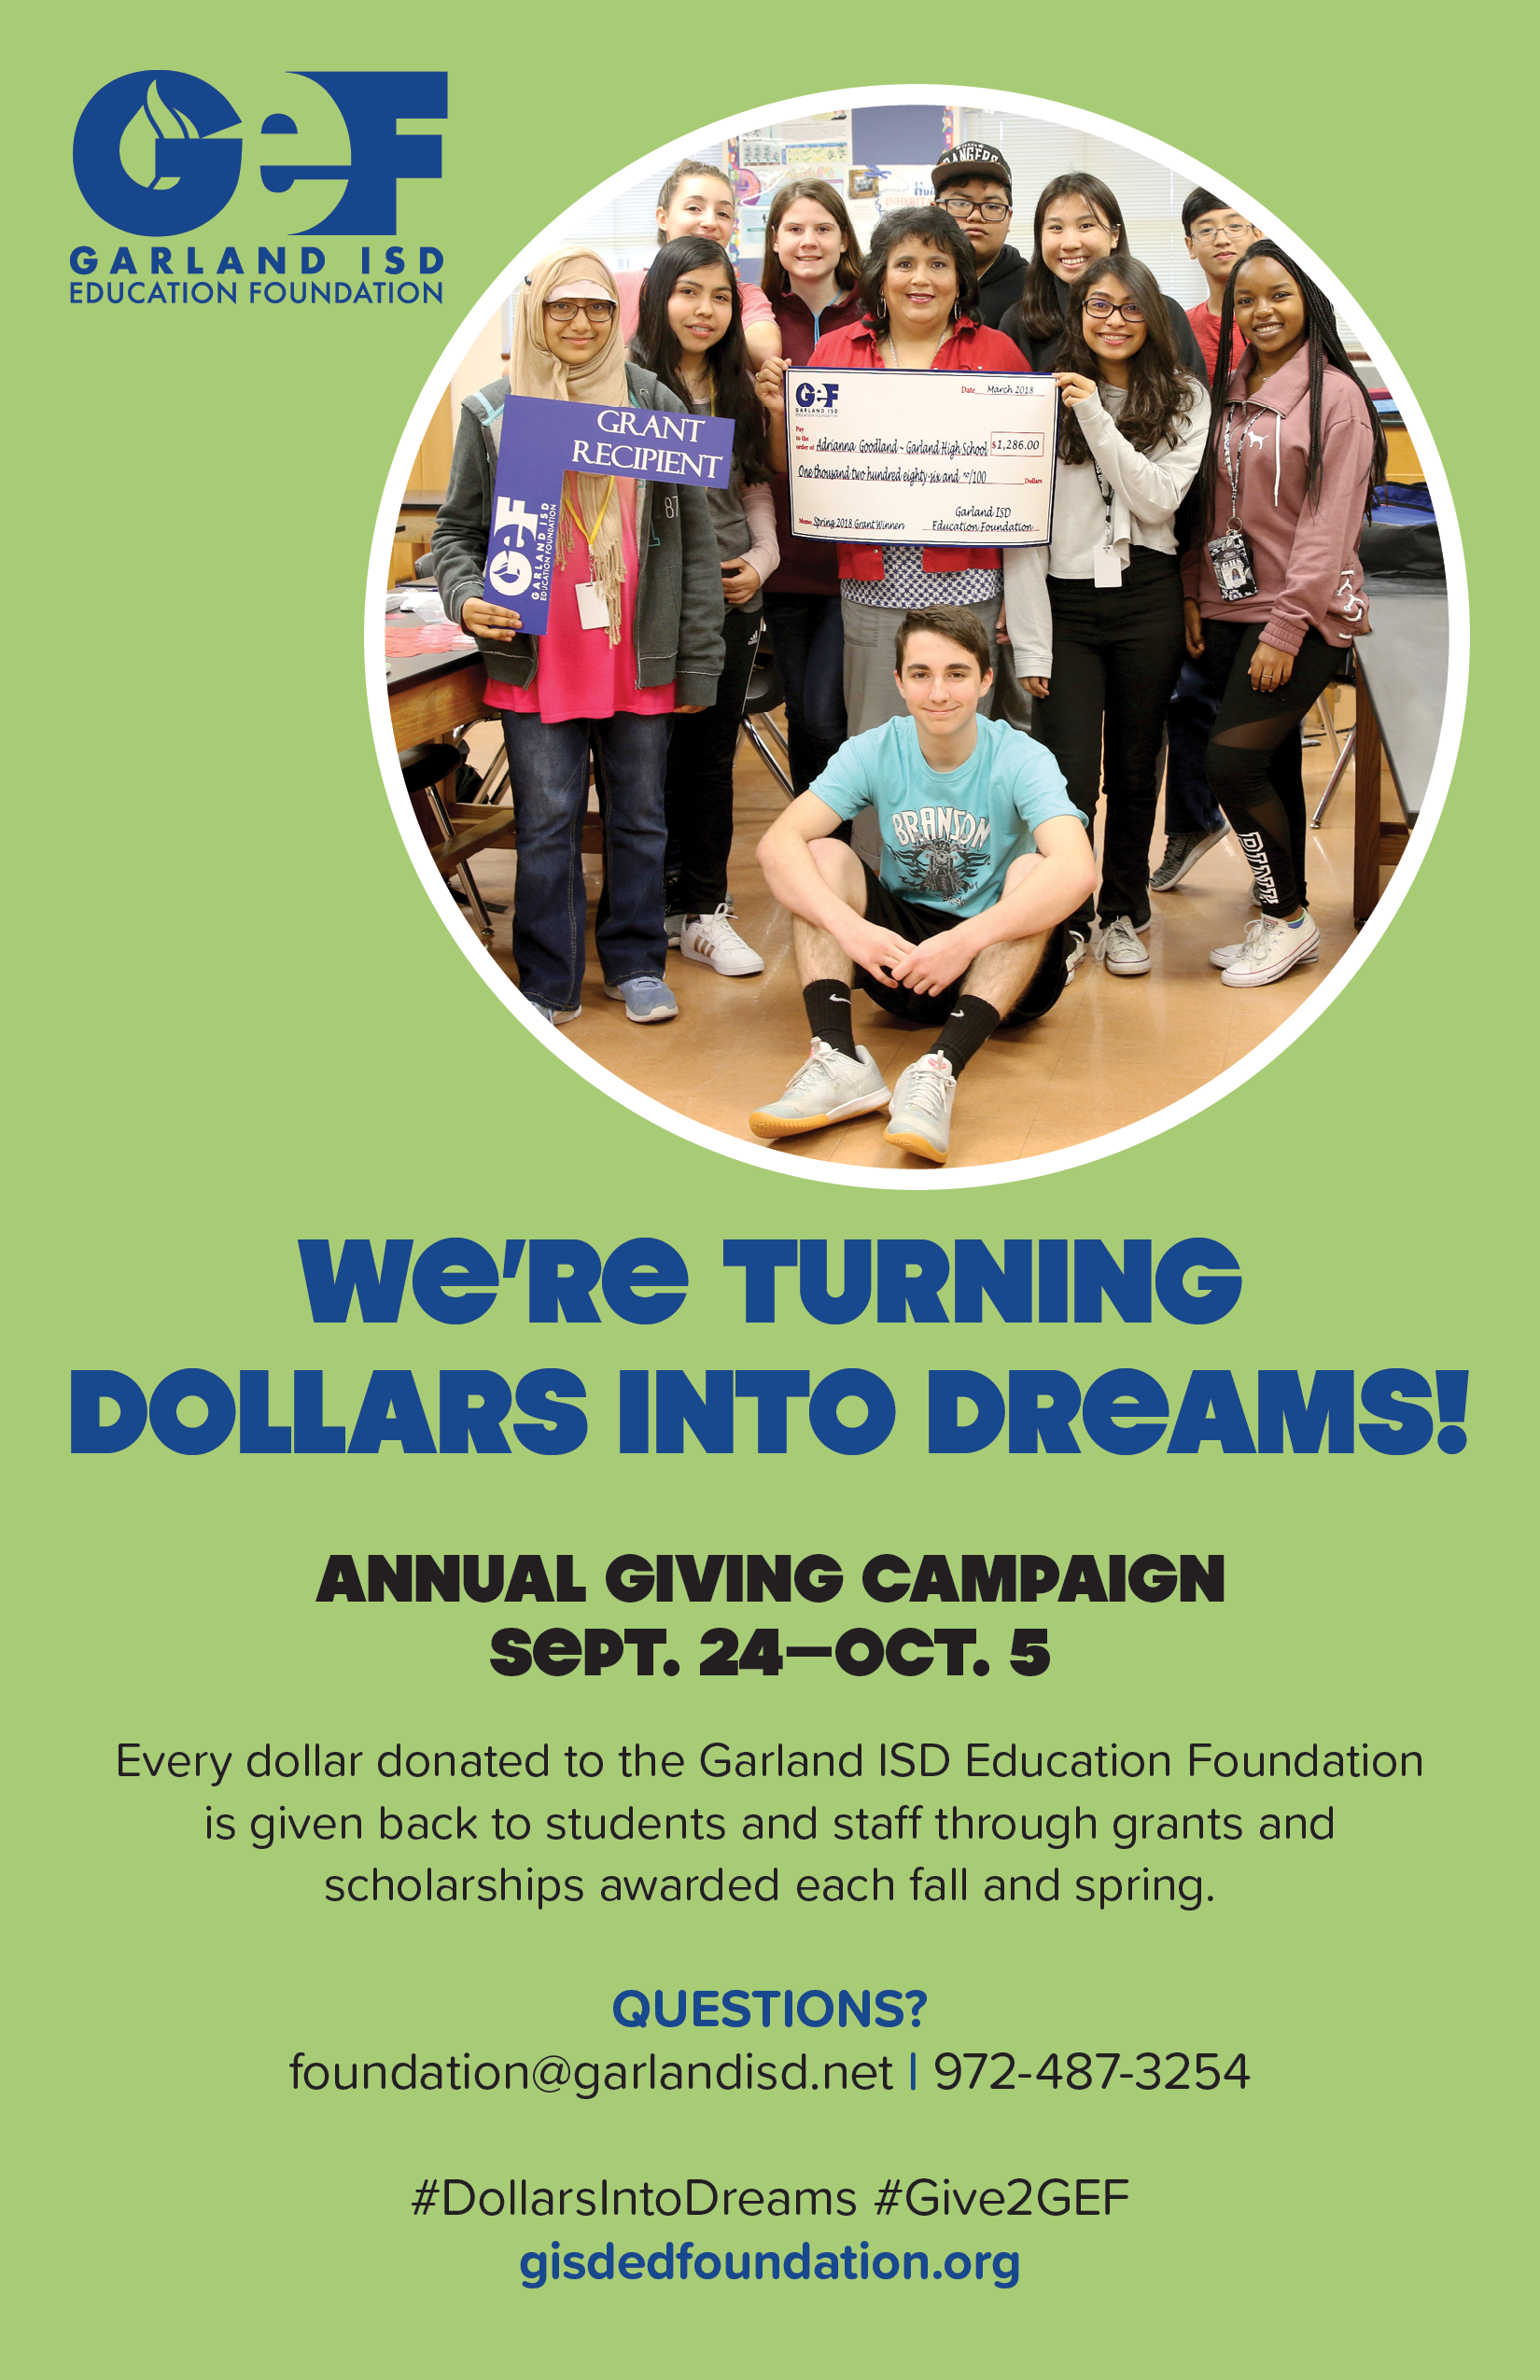 We're turning dollars into dreams. The annual giving campaign runs from September 24 - October 2.